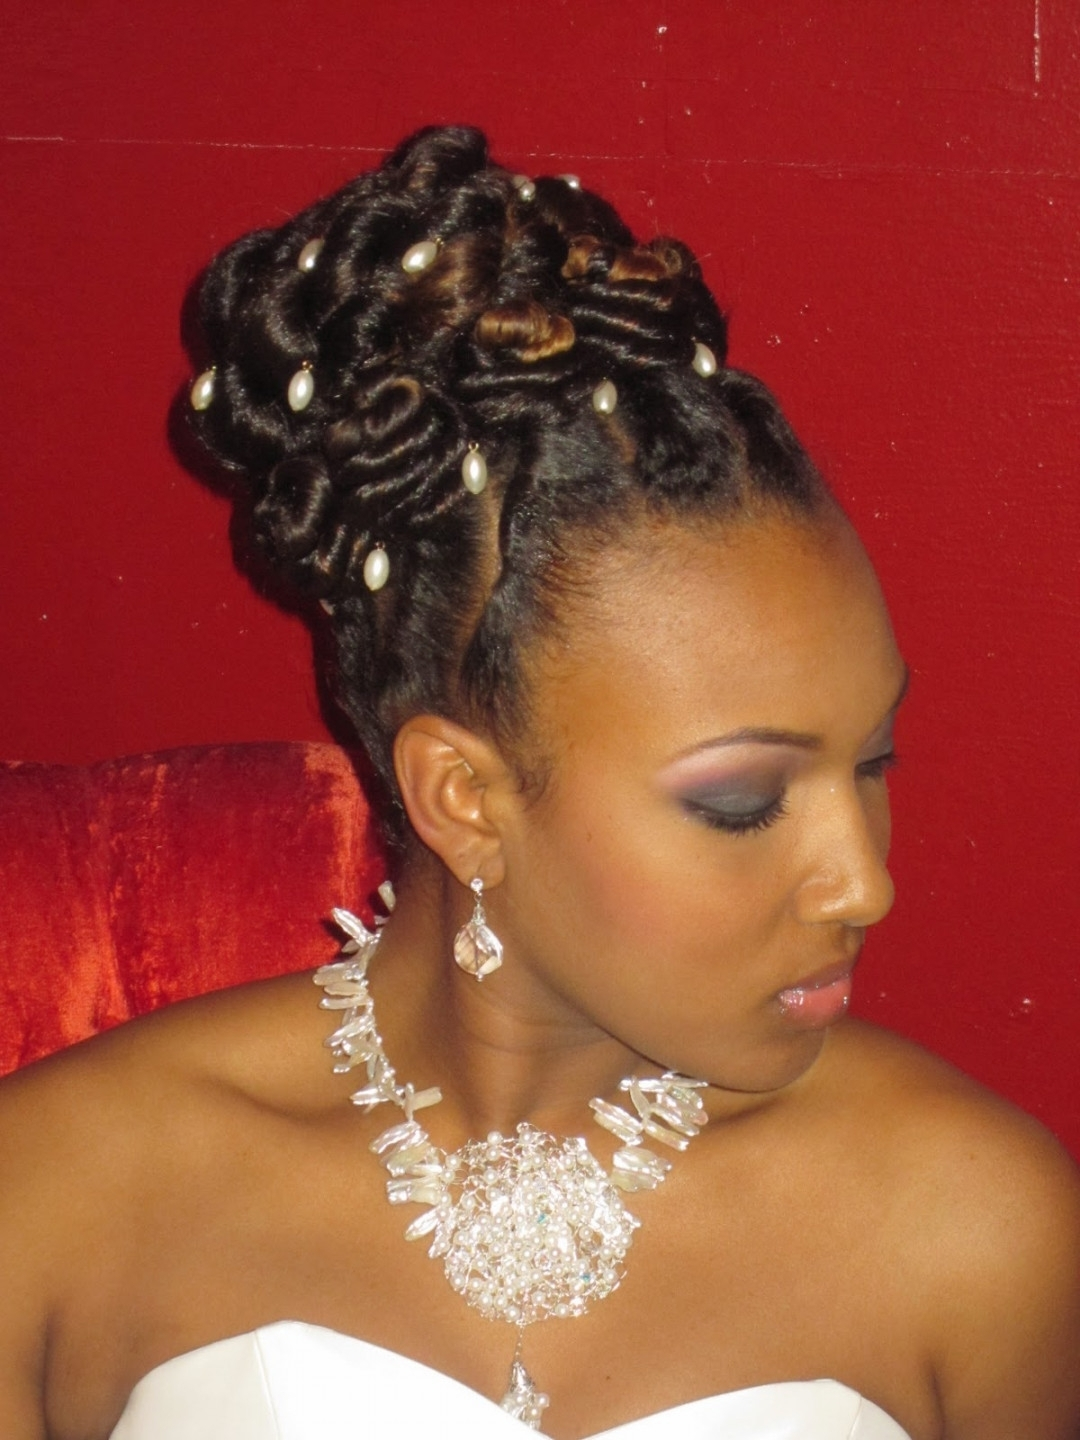 Updo Hairstyles Black Hair Updo Hairstyles For Black Women Natural With Updo Hairstyles For Natural Black Hair (View 14 of 15)